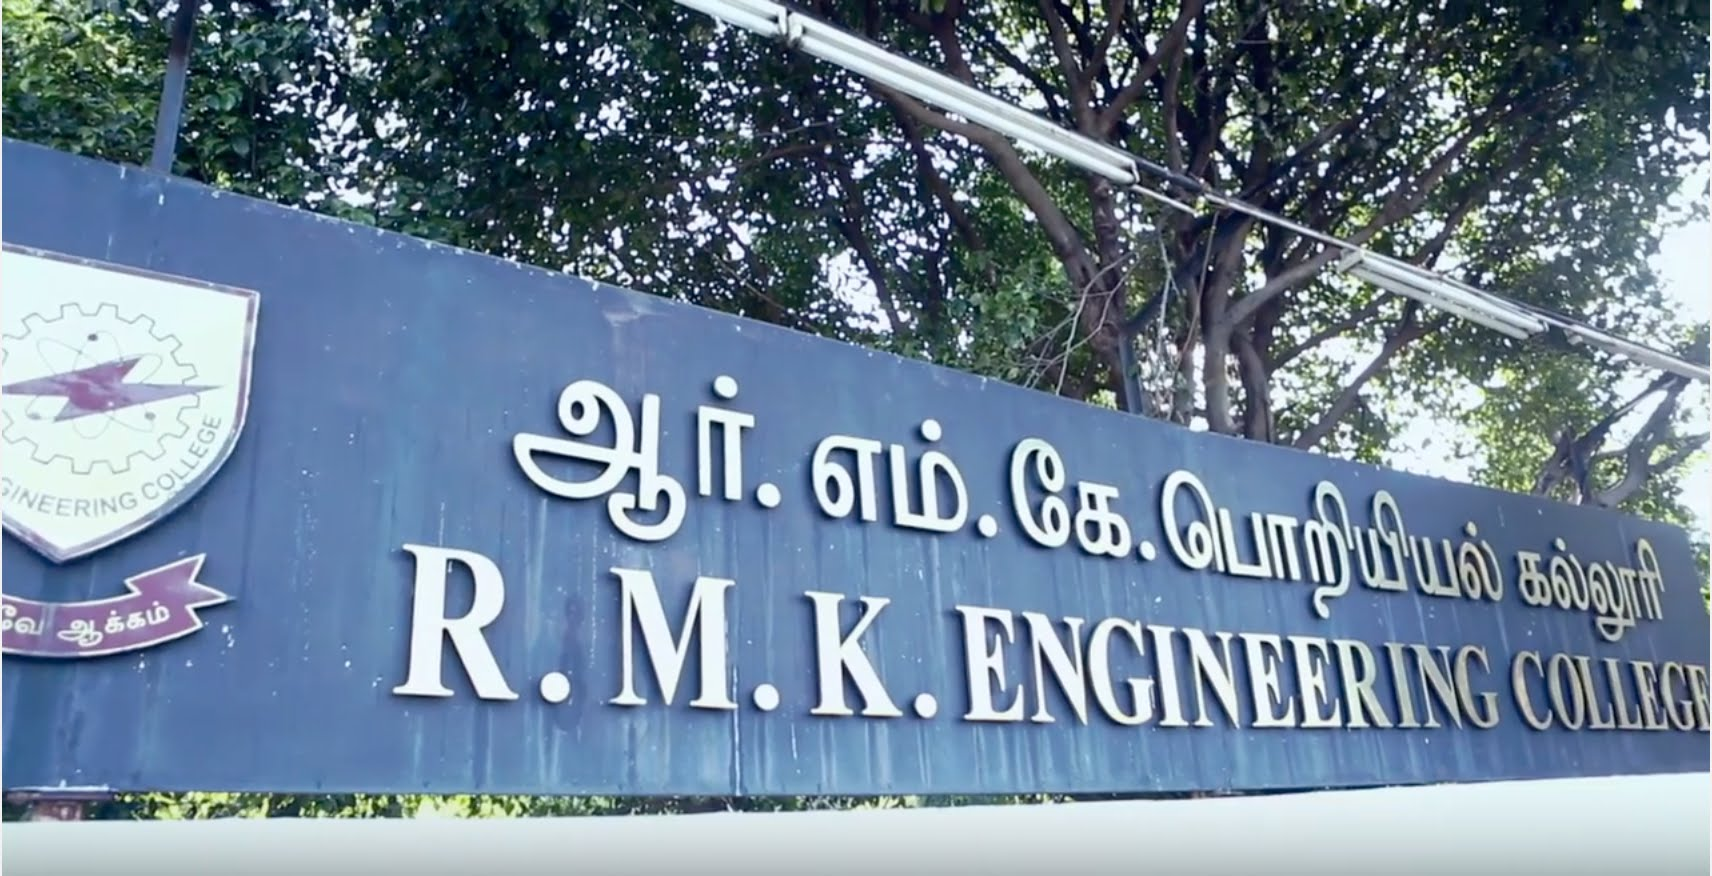 CFP: Conference on Cyber Physical Systems @ RMK College, Kavaraipettai, TN [Apr 20-21]: Submit by Jan 20